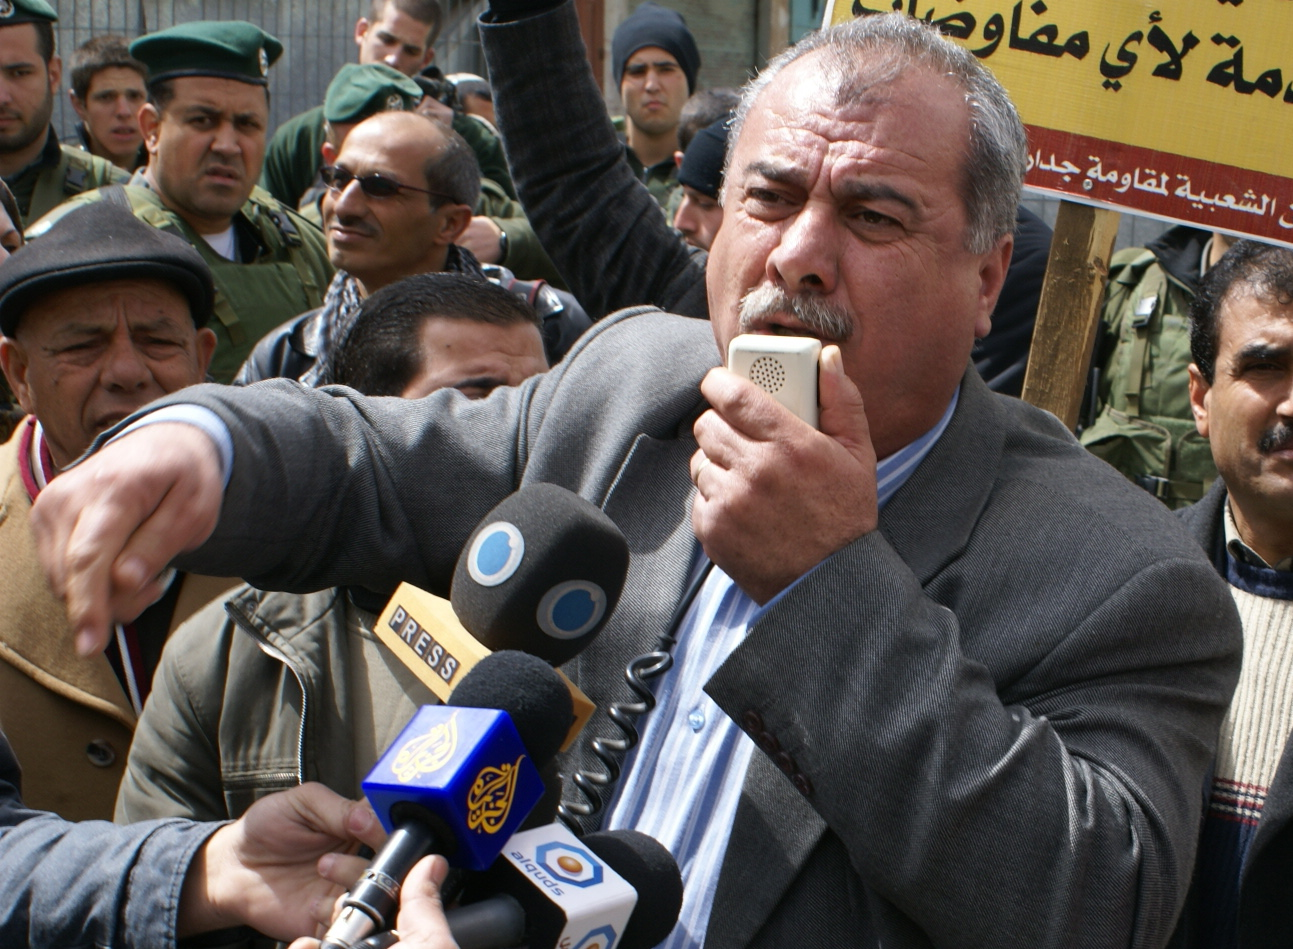 MK Mohammad Barakeh addresses protesters in front of the entrance to Shuhada Street in Hebron